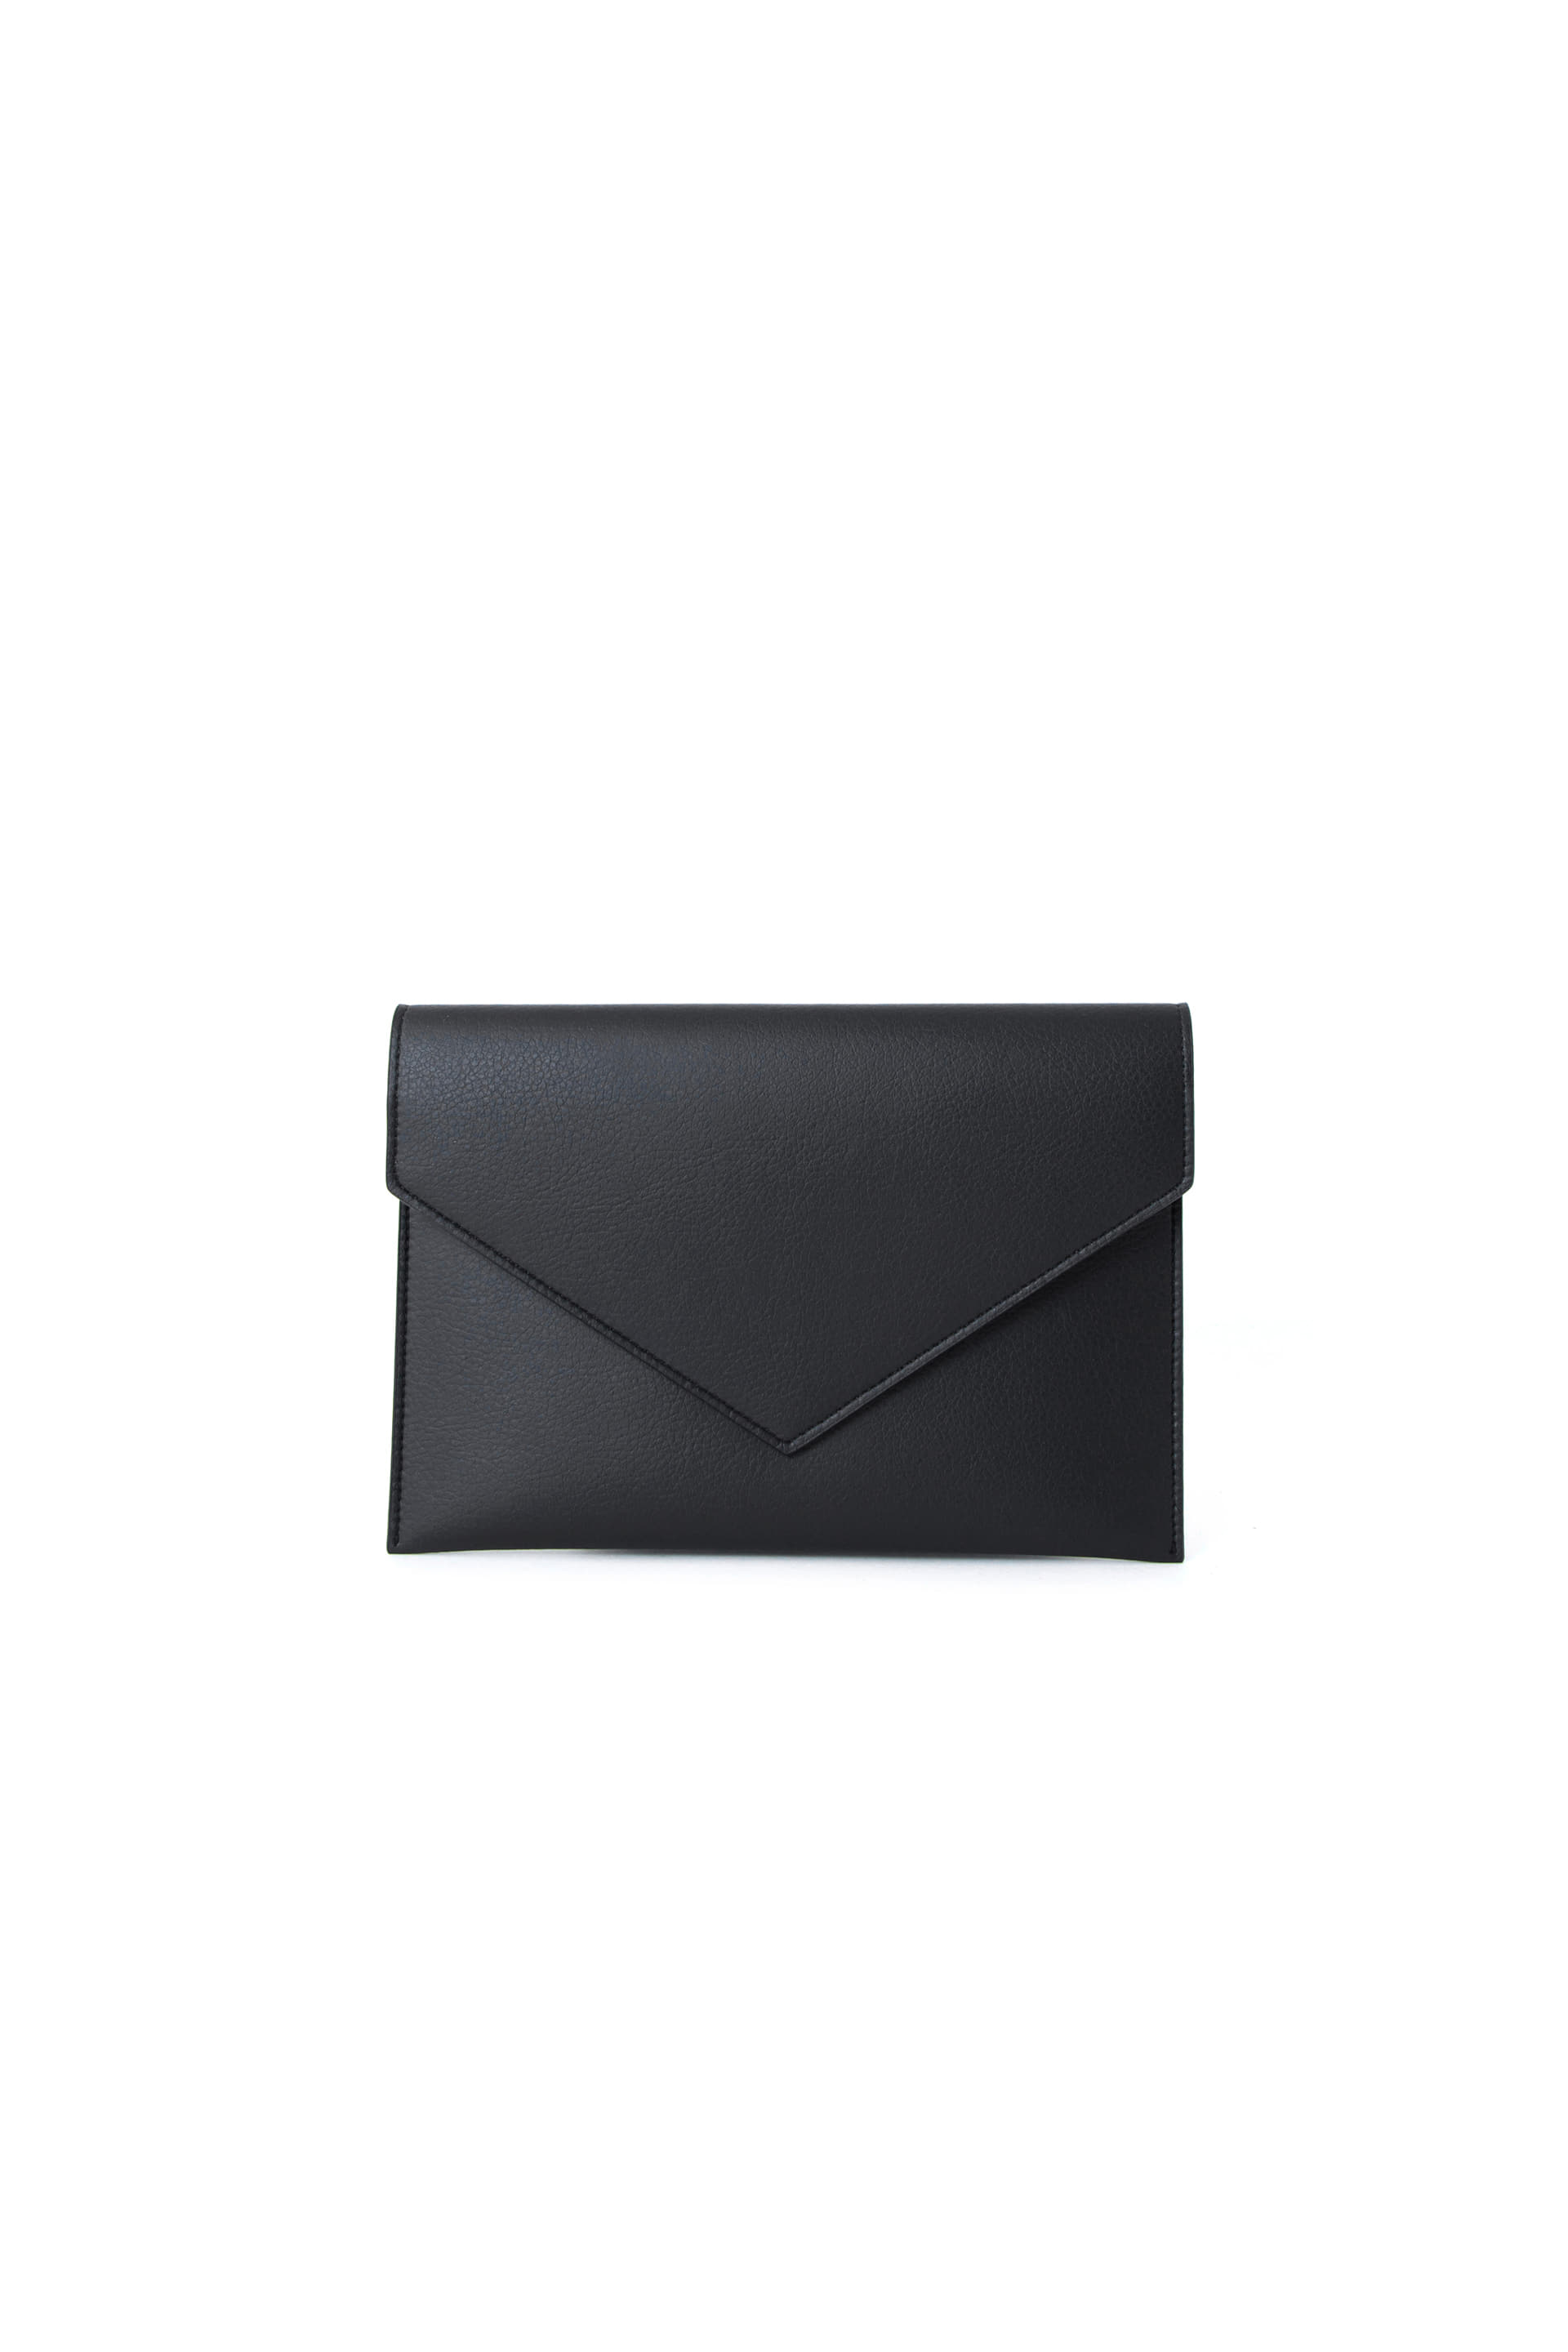 COSMETIC CLUTCH 22 Black